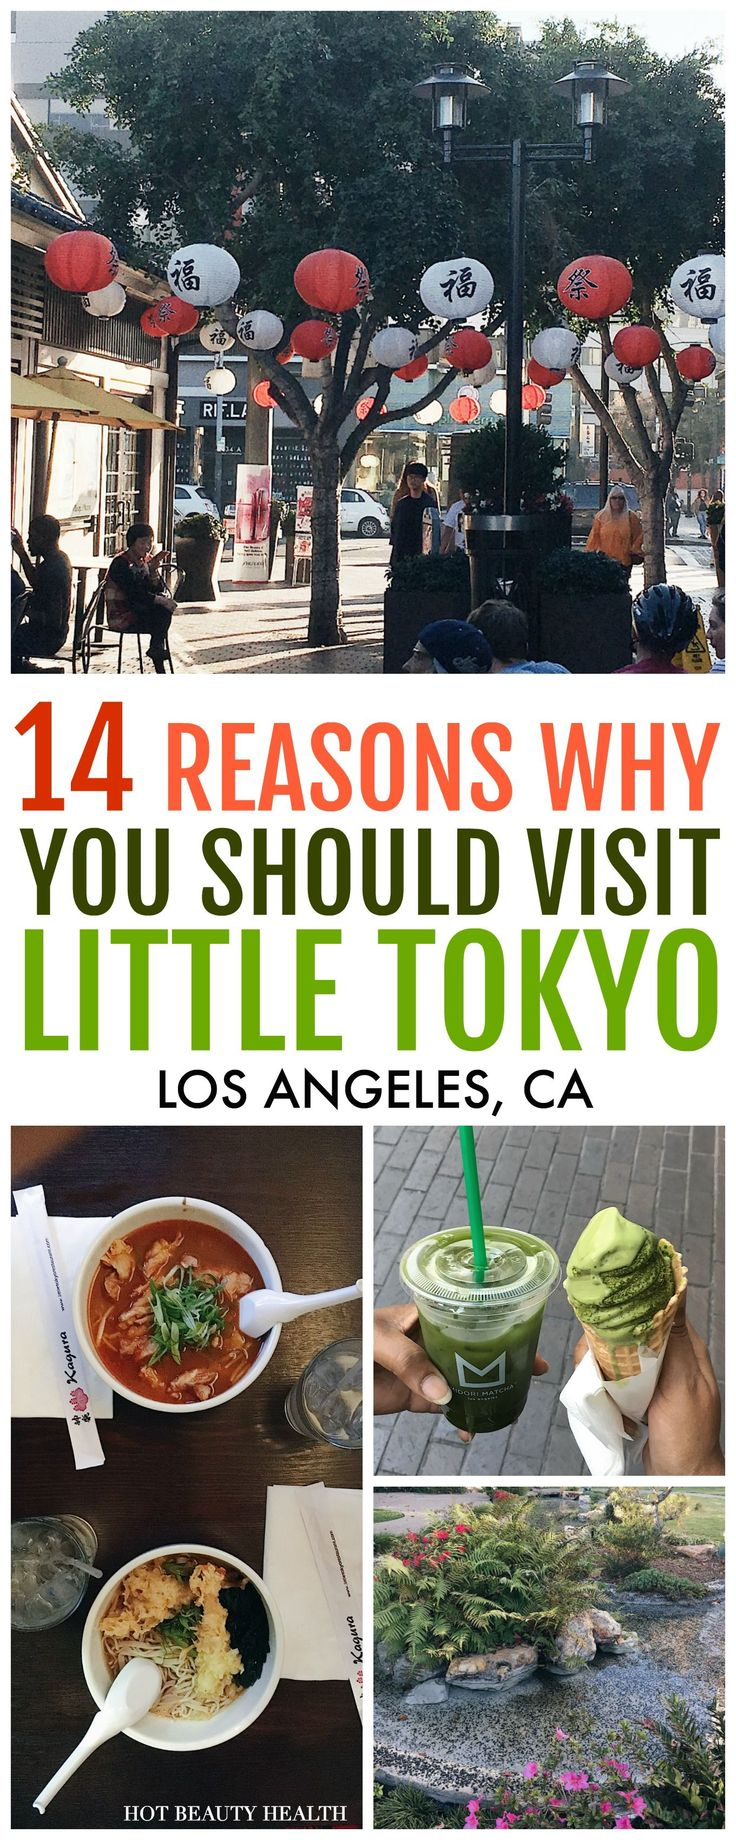 Here's a 2-day essential travel guide to one of Los Angeles hottest neighborhoods: Little Tokyo. See my favorite eats, coffee shop and restaurants, know where to stay and shop, and things to do and see. It's next to downtown los angeles and is a great district to visit on the weekend. Hot Beauty Health #littletokyo #traveltips